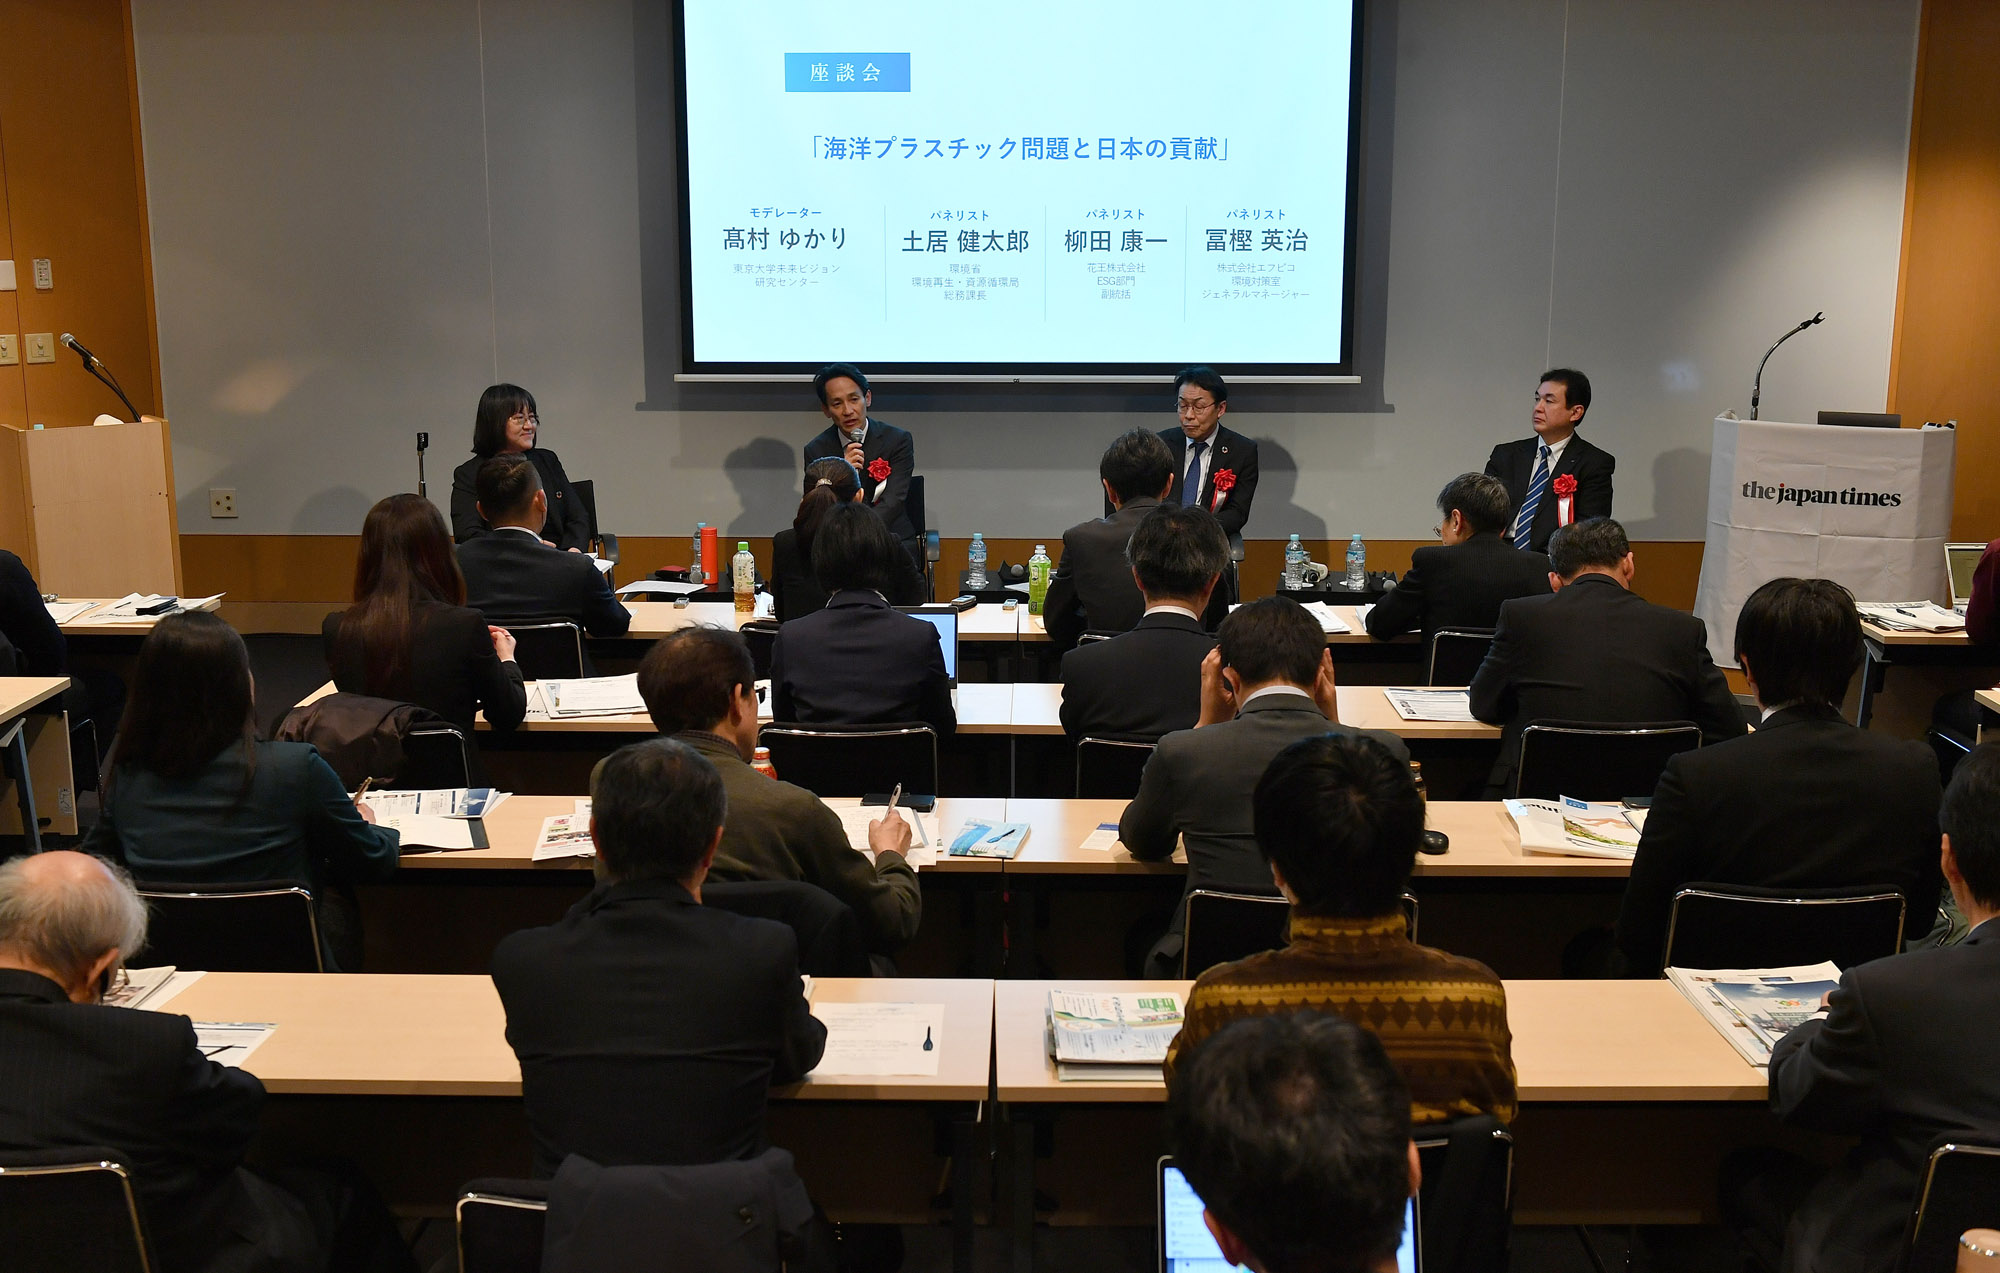 Panelists at a forum, 'Issues on marine plastic waste and Japan's contribution,' hosted by The Japan Times and organized by the Japan Times ESG Consortium, discuss Japan's plastic waste and recycling system in Tokyo's Minato Ward on April 1. | YOSHIAKI MIURA